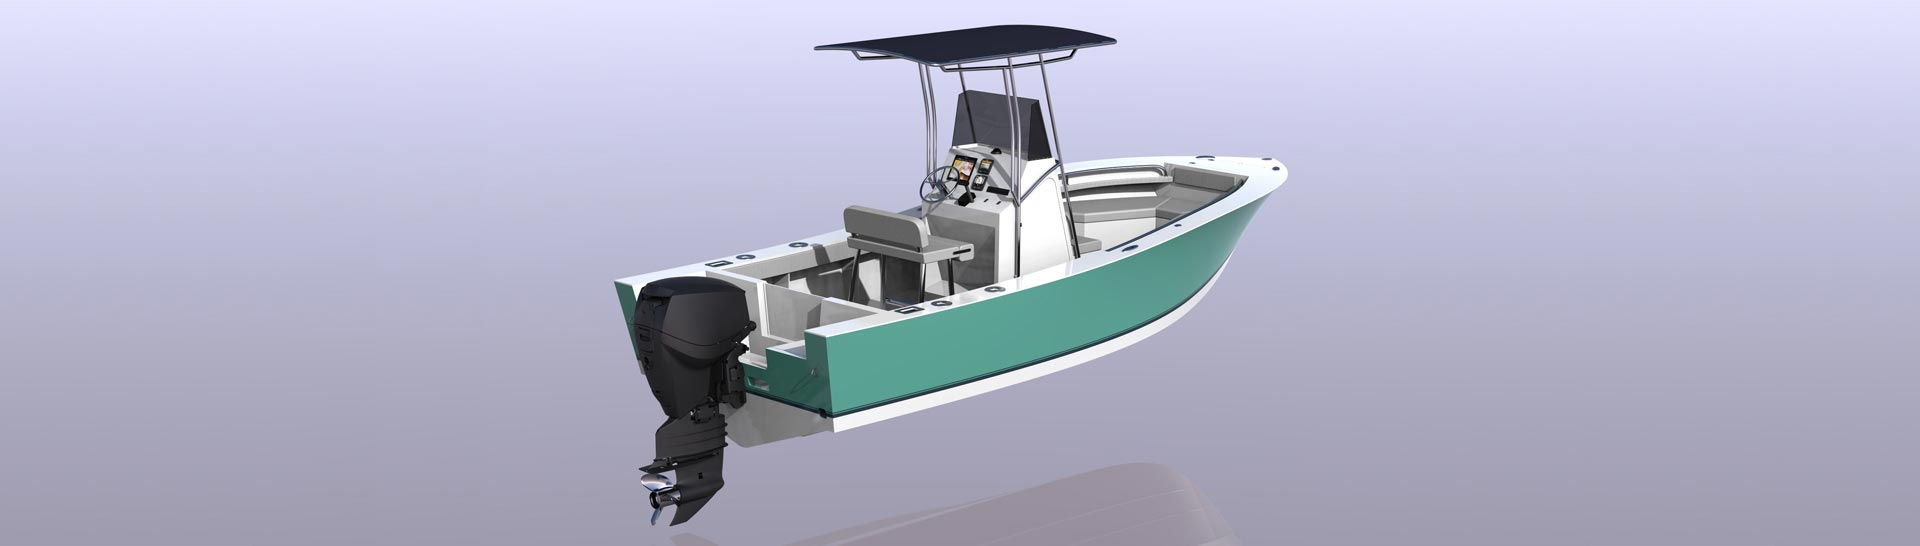 Open deck fishing skiff, power boat, bay boat, flats boat